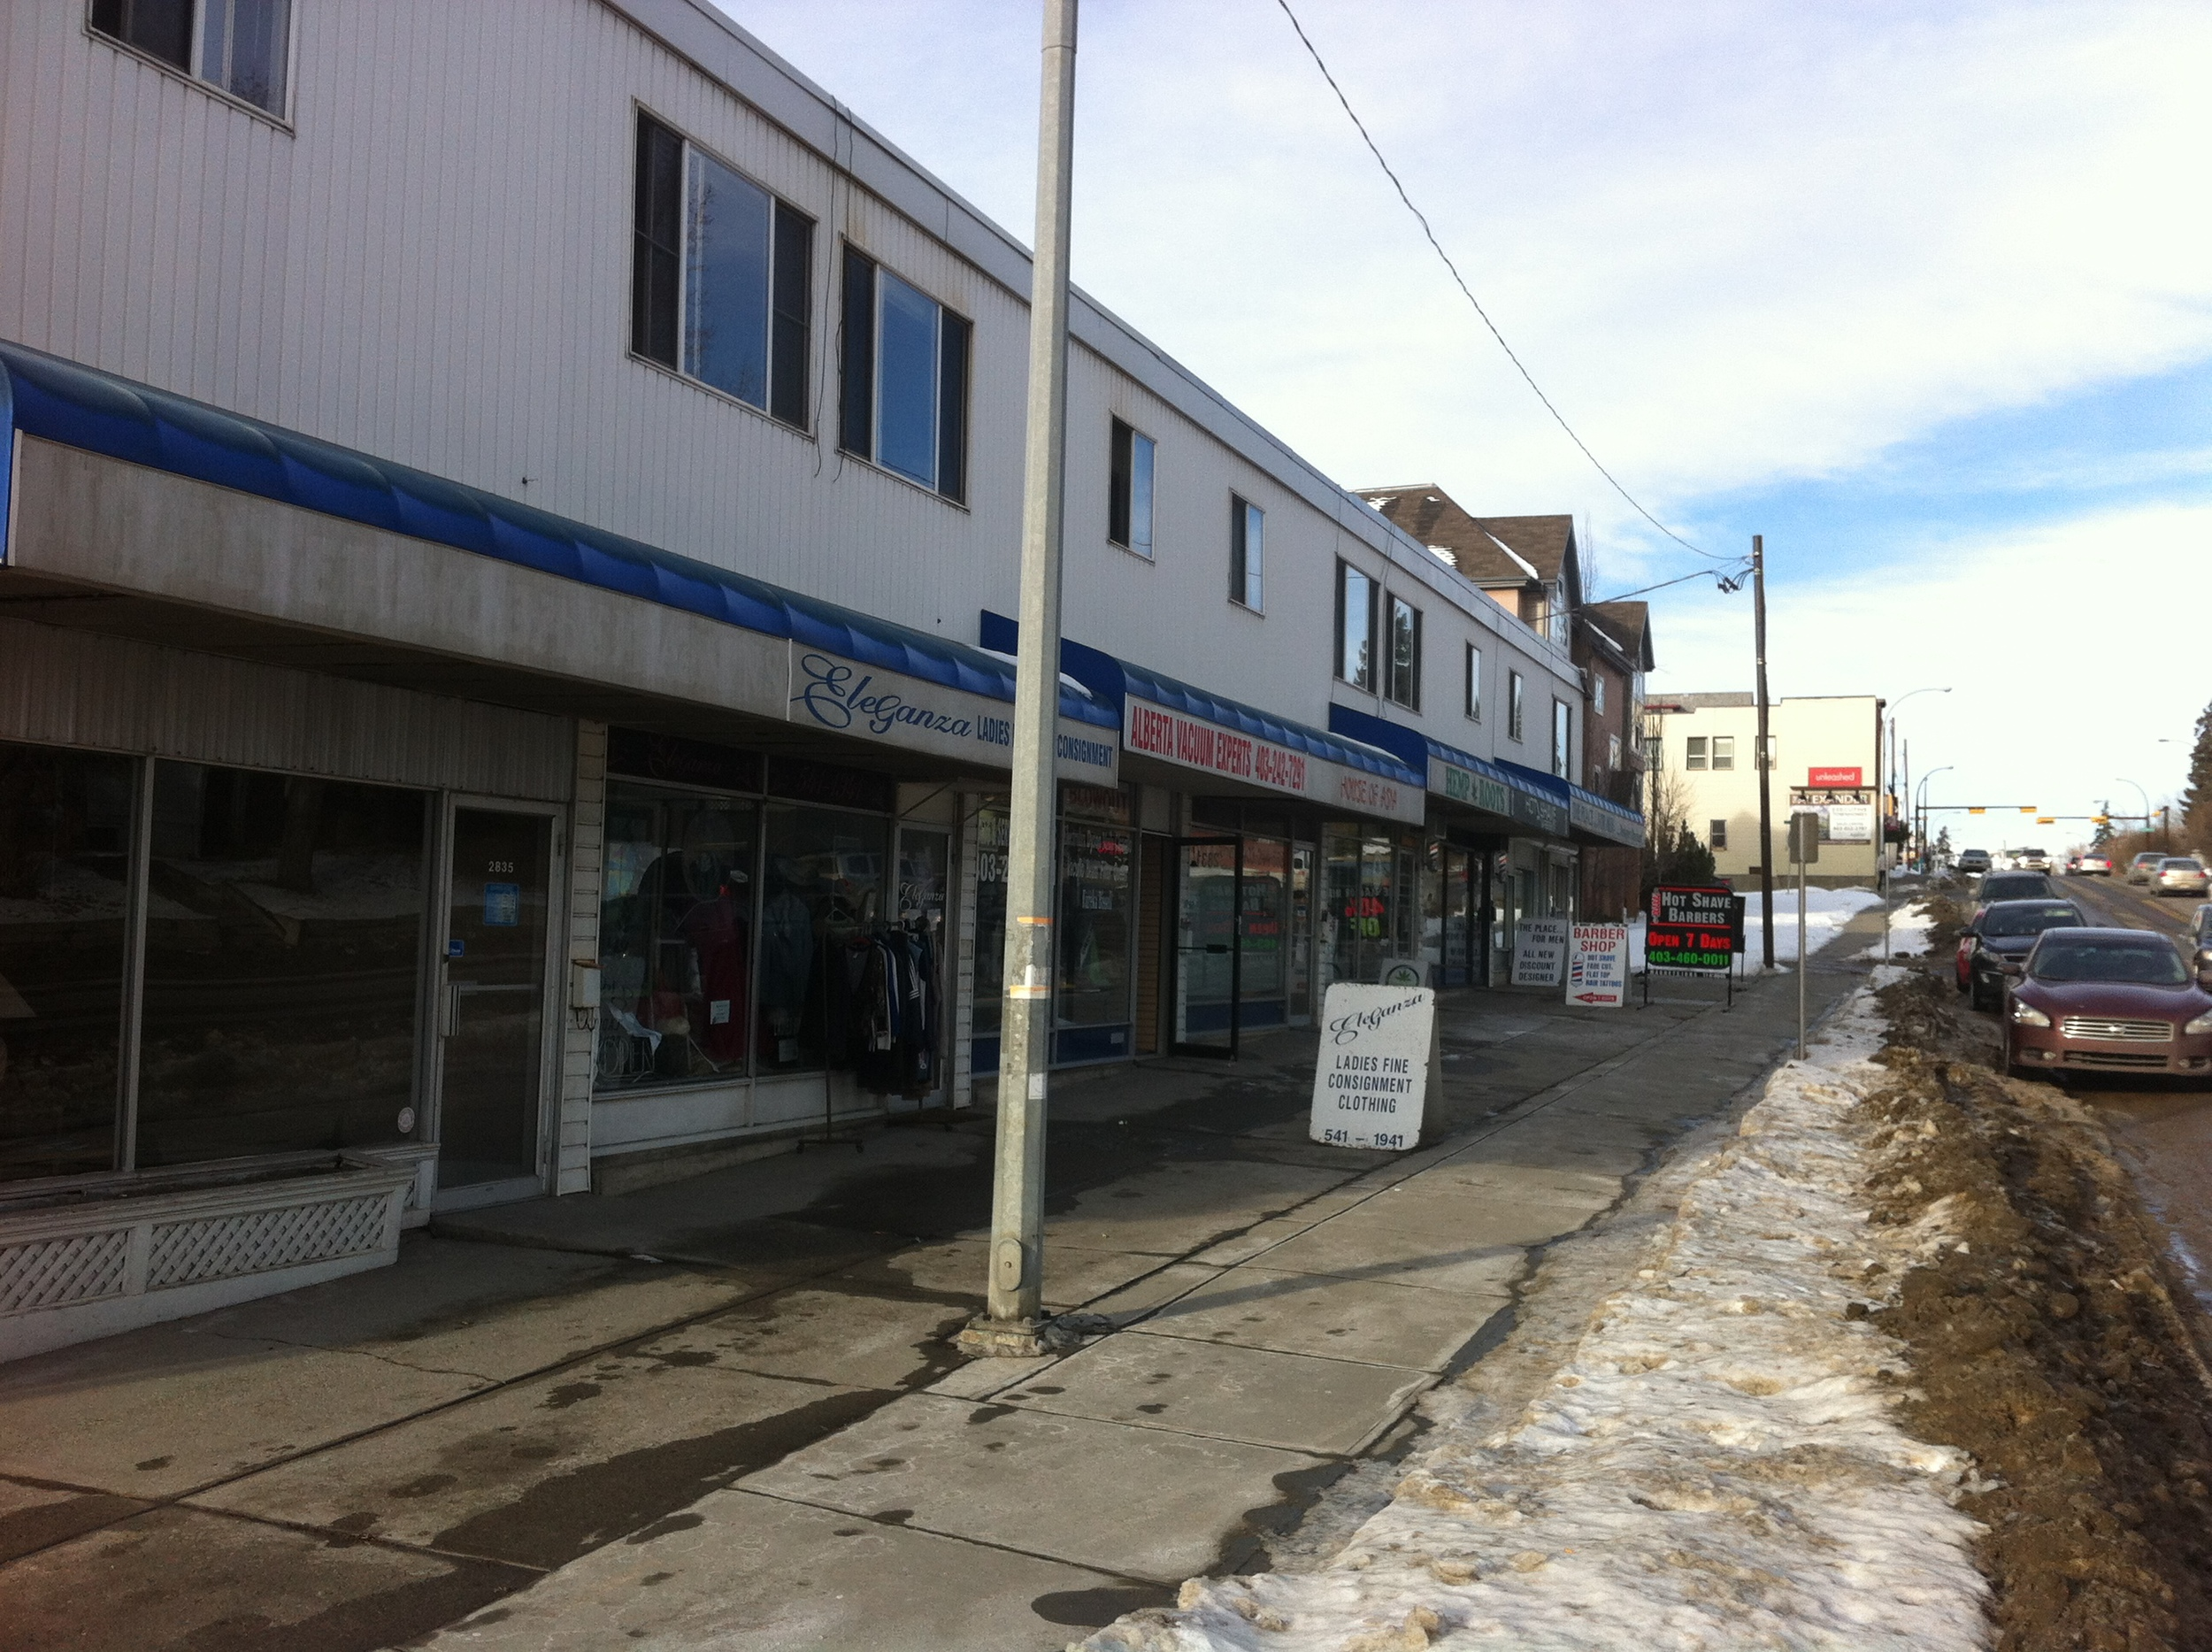 14th Street SW is a prime candidate for a Main Street program on the west side of the street. These single storey buildings could be replaced with 4 to 6 storey structures with retail, restaurants and cafes along the street.